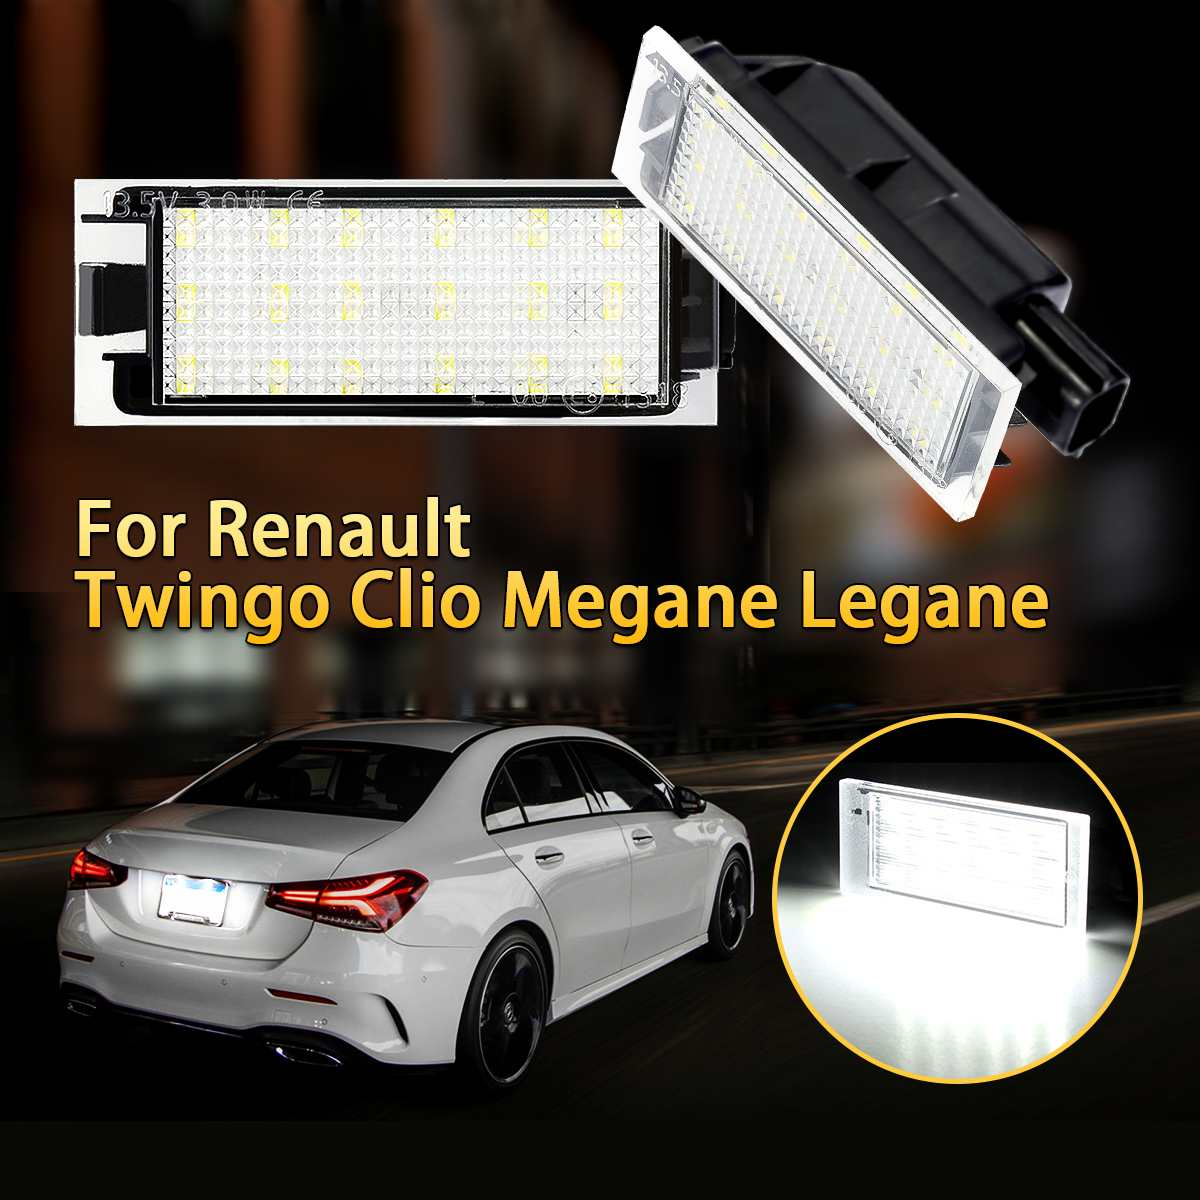 2X Car <font><b>LED</b></font> Number License Plate Lights For <font><b>Renault</b></font> Megane 2 Clio Laguna 2 Megane <font><b>3</b></font> Twingo <font><b>Master</b></font> Vel Satis image